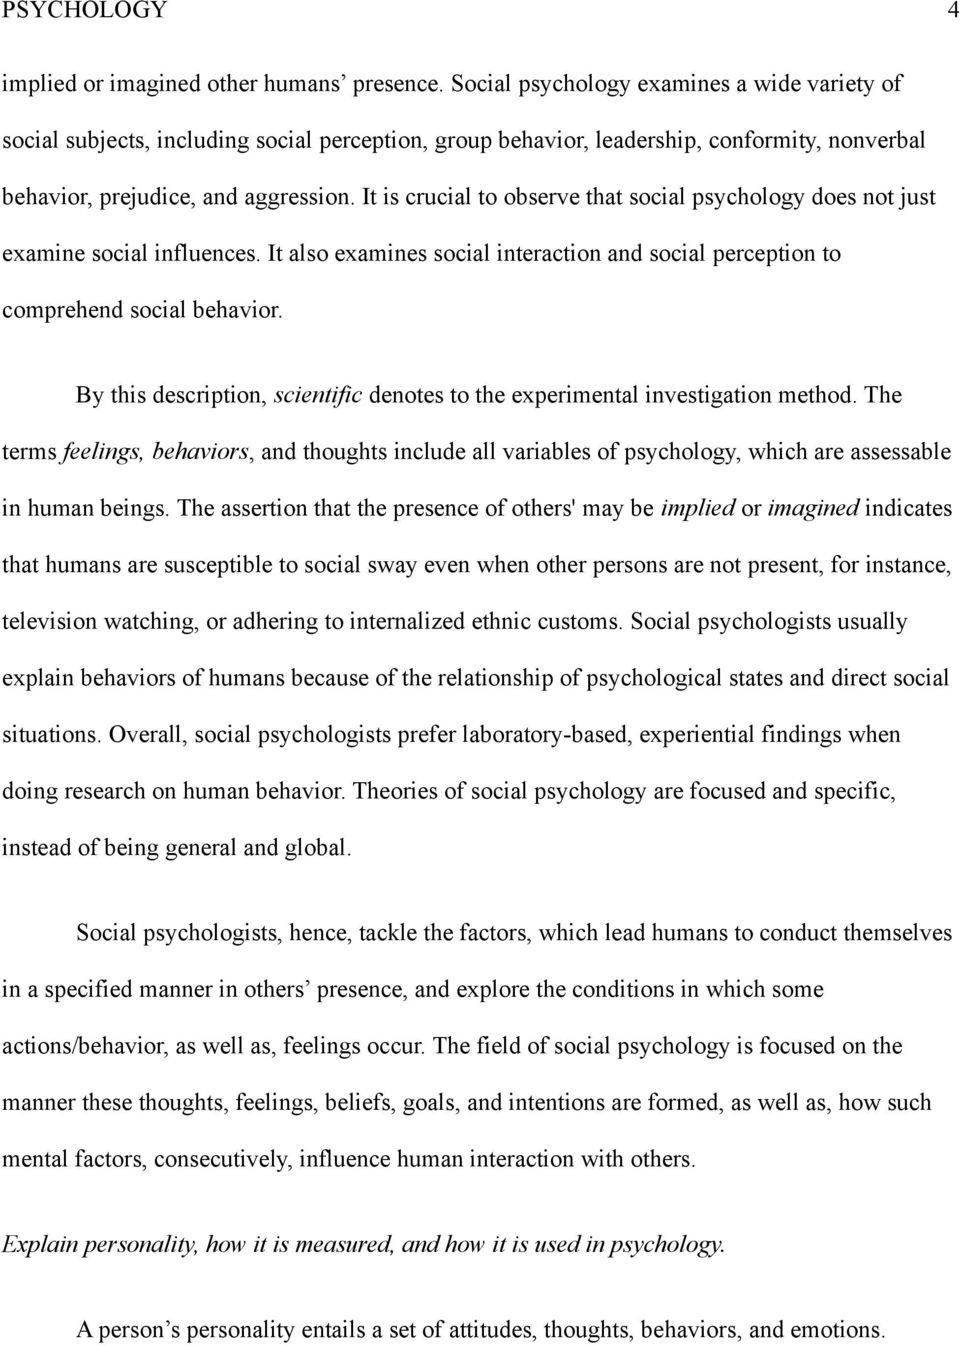 It is crucial to observe that social psychology does not just examine social influences. It also examines social interaction and social perception to comprehend social behavior.